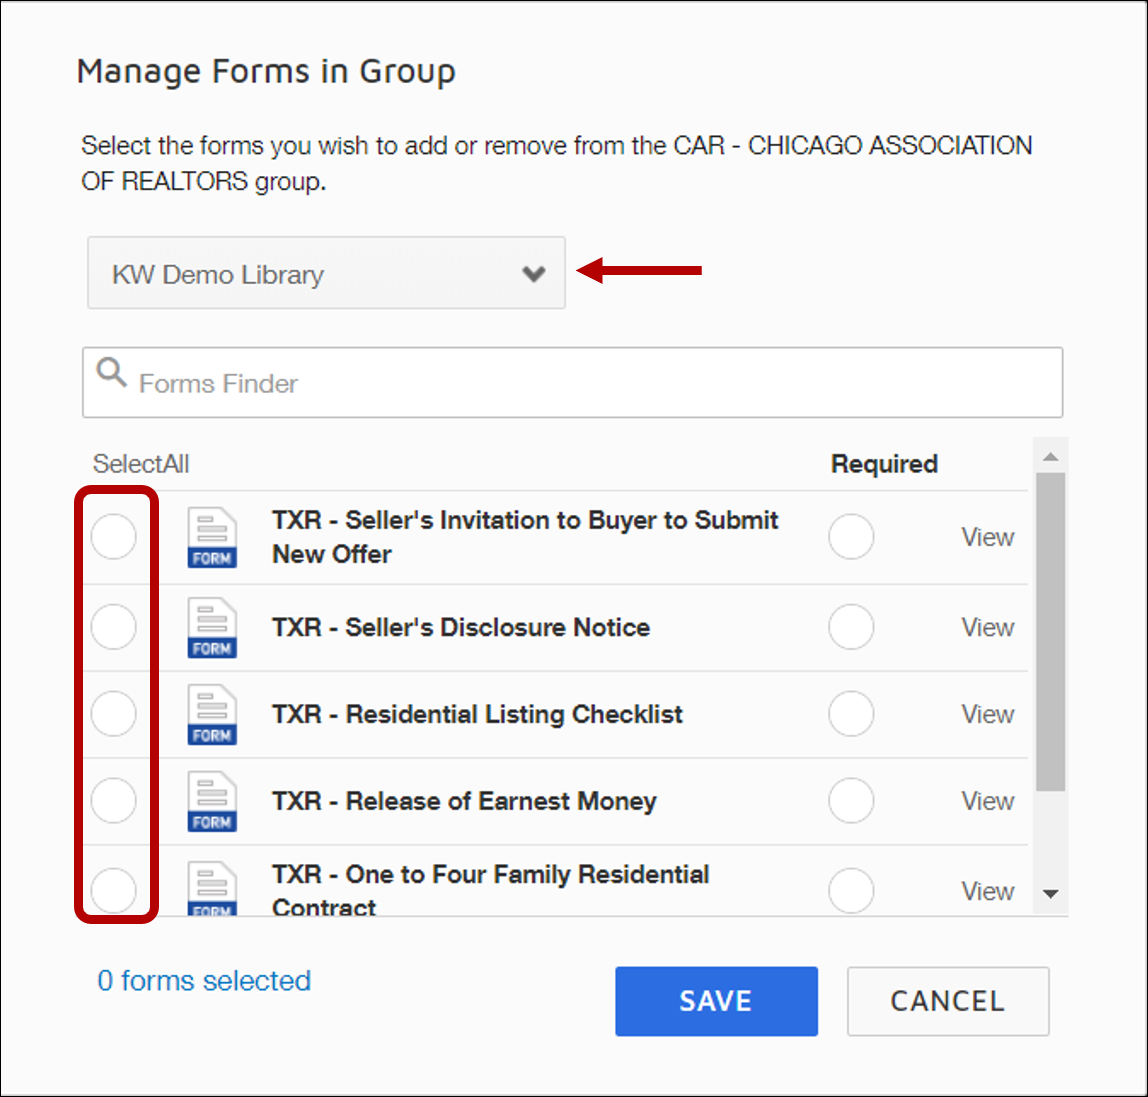 manage_forms_in_group.png